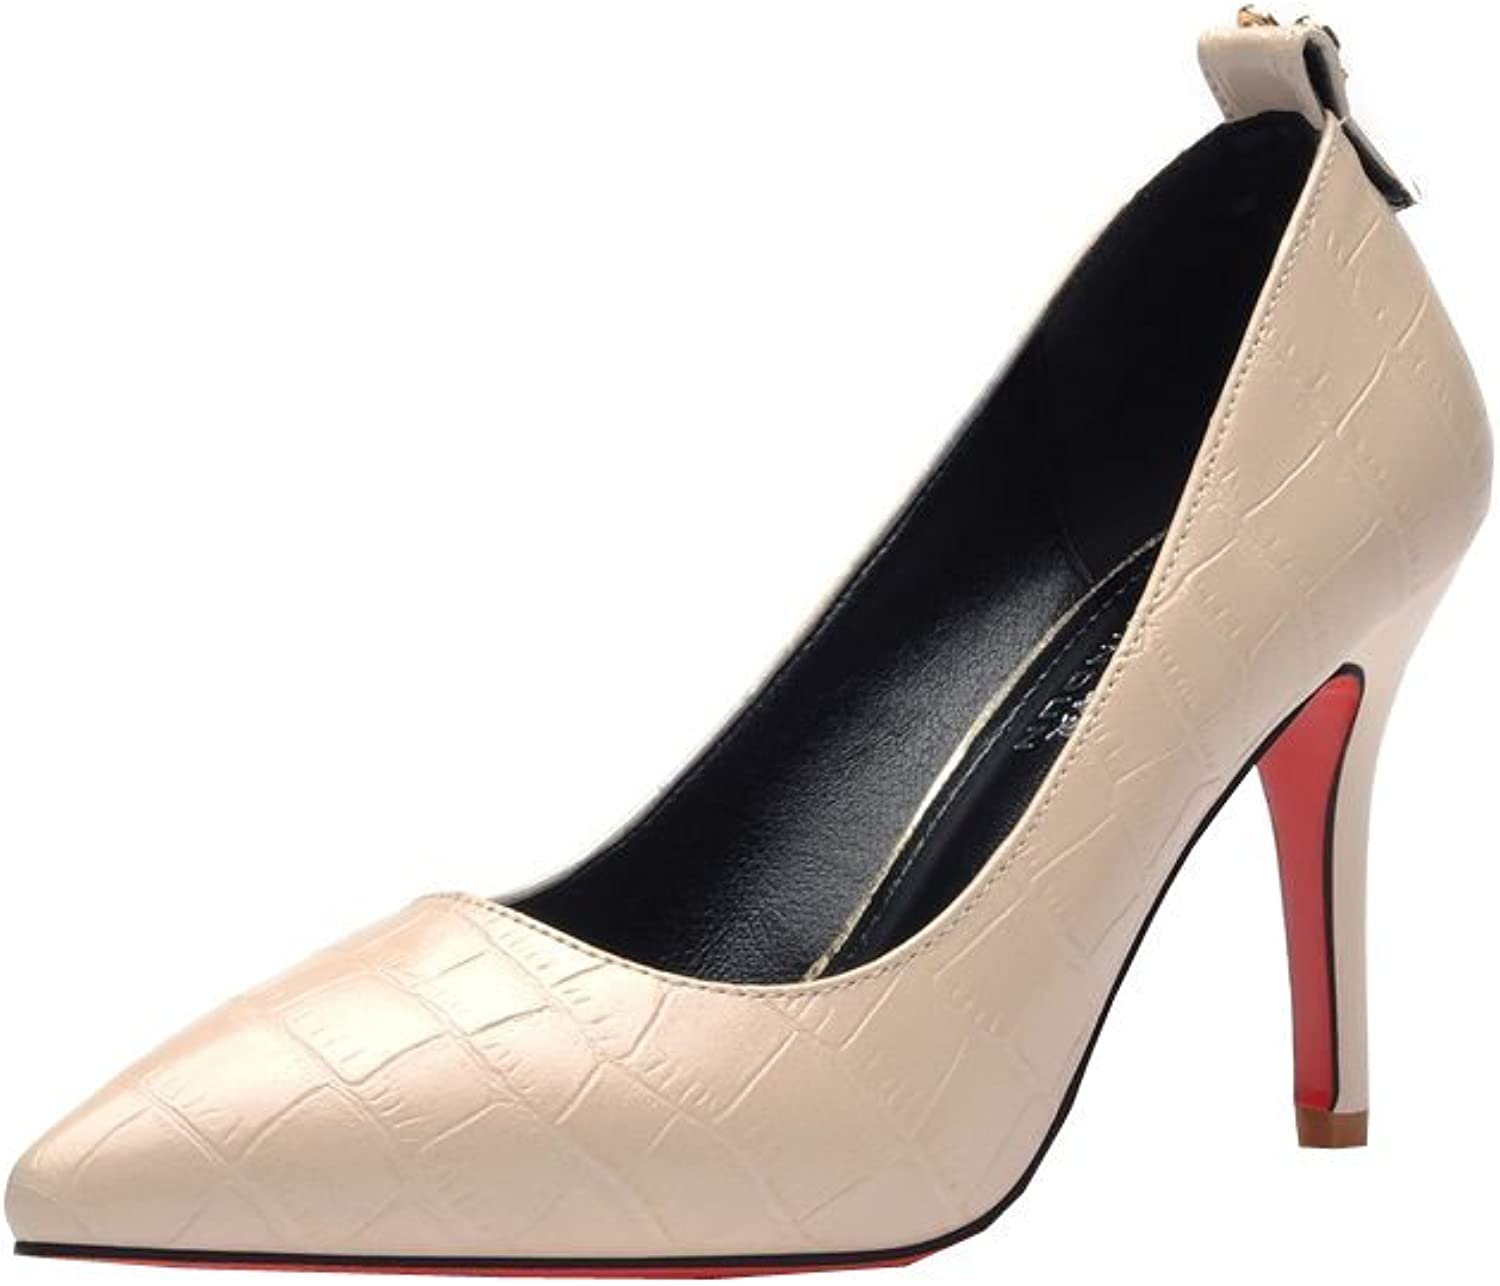 Ryse Women's Delicate Pattern Bowknot Elegant Temperament High Heels Pointy shoes